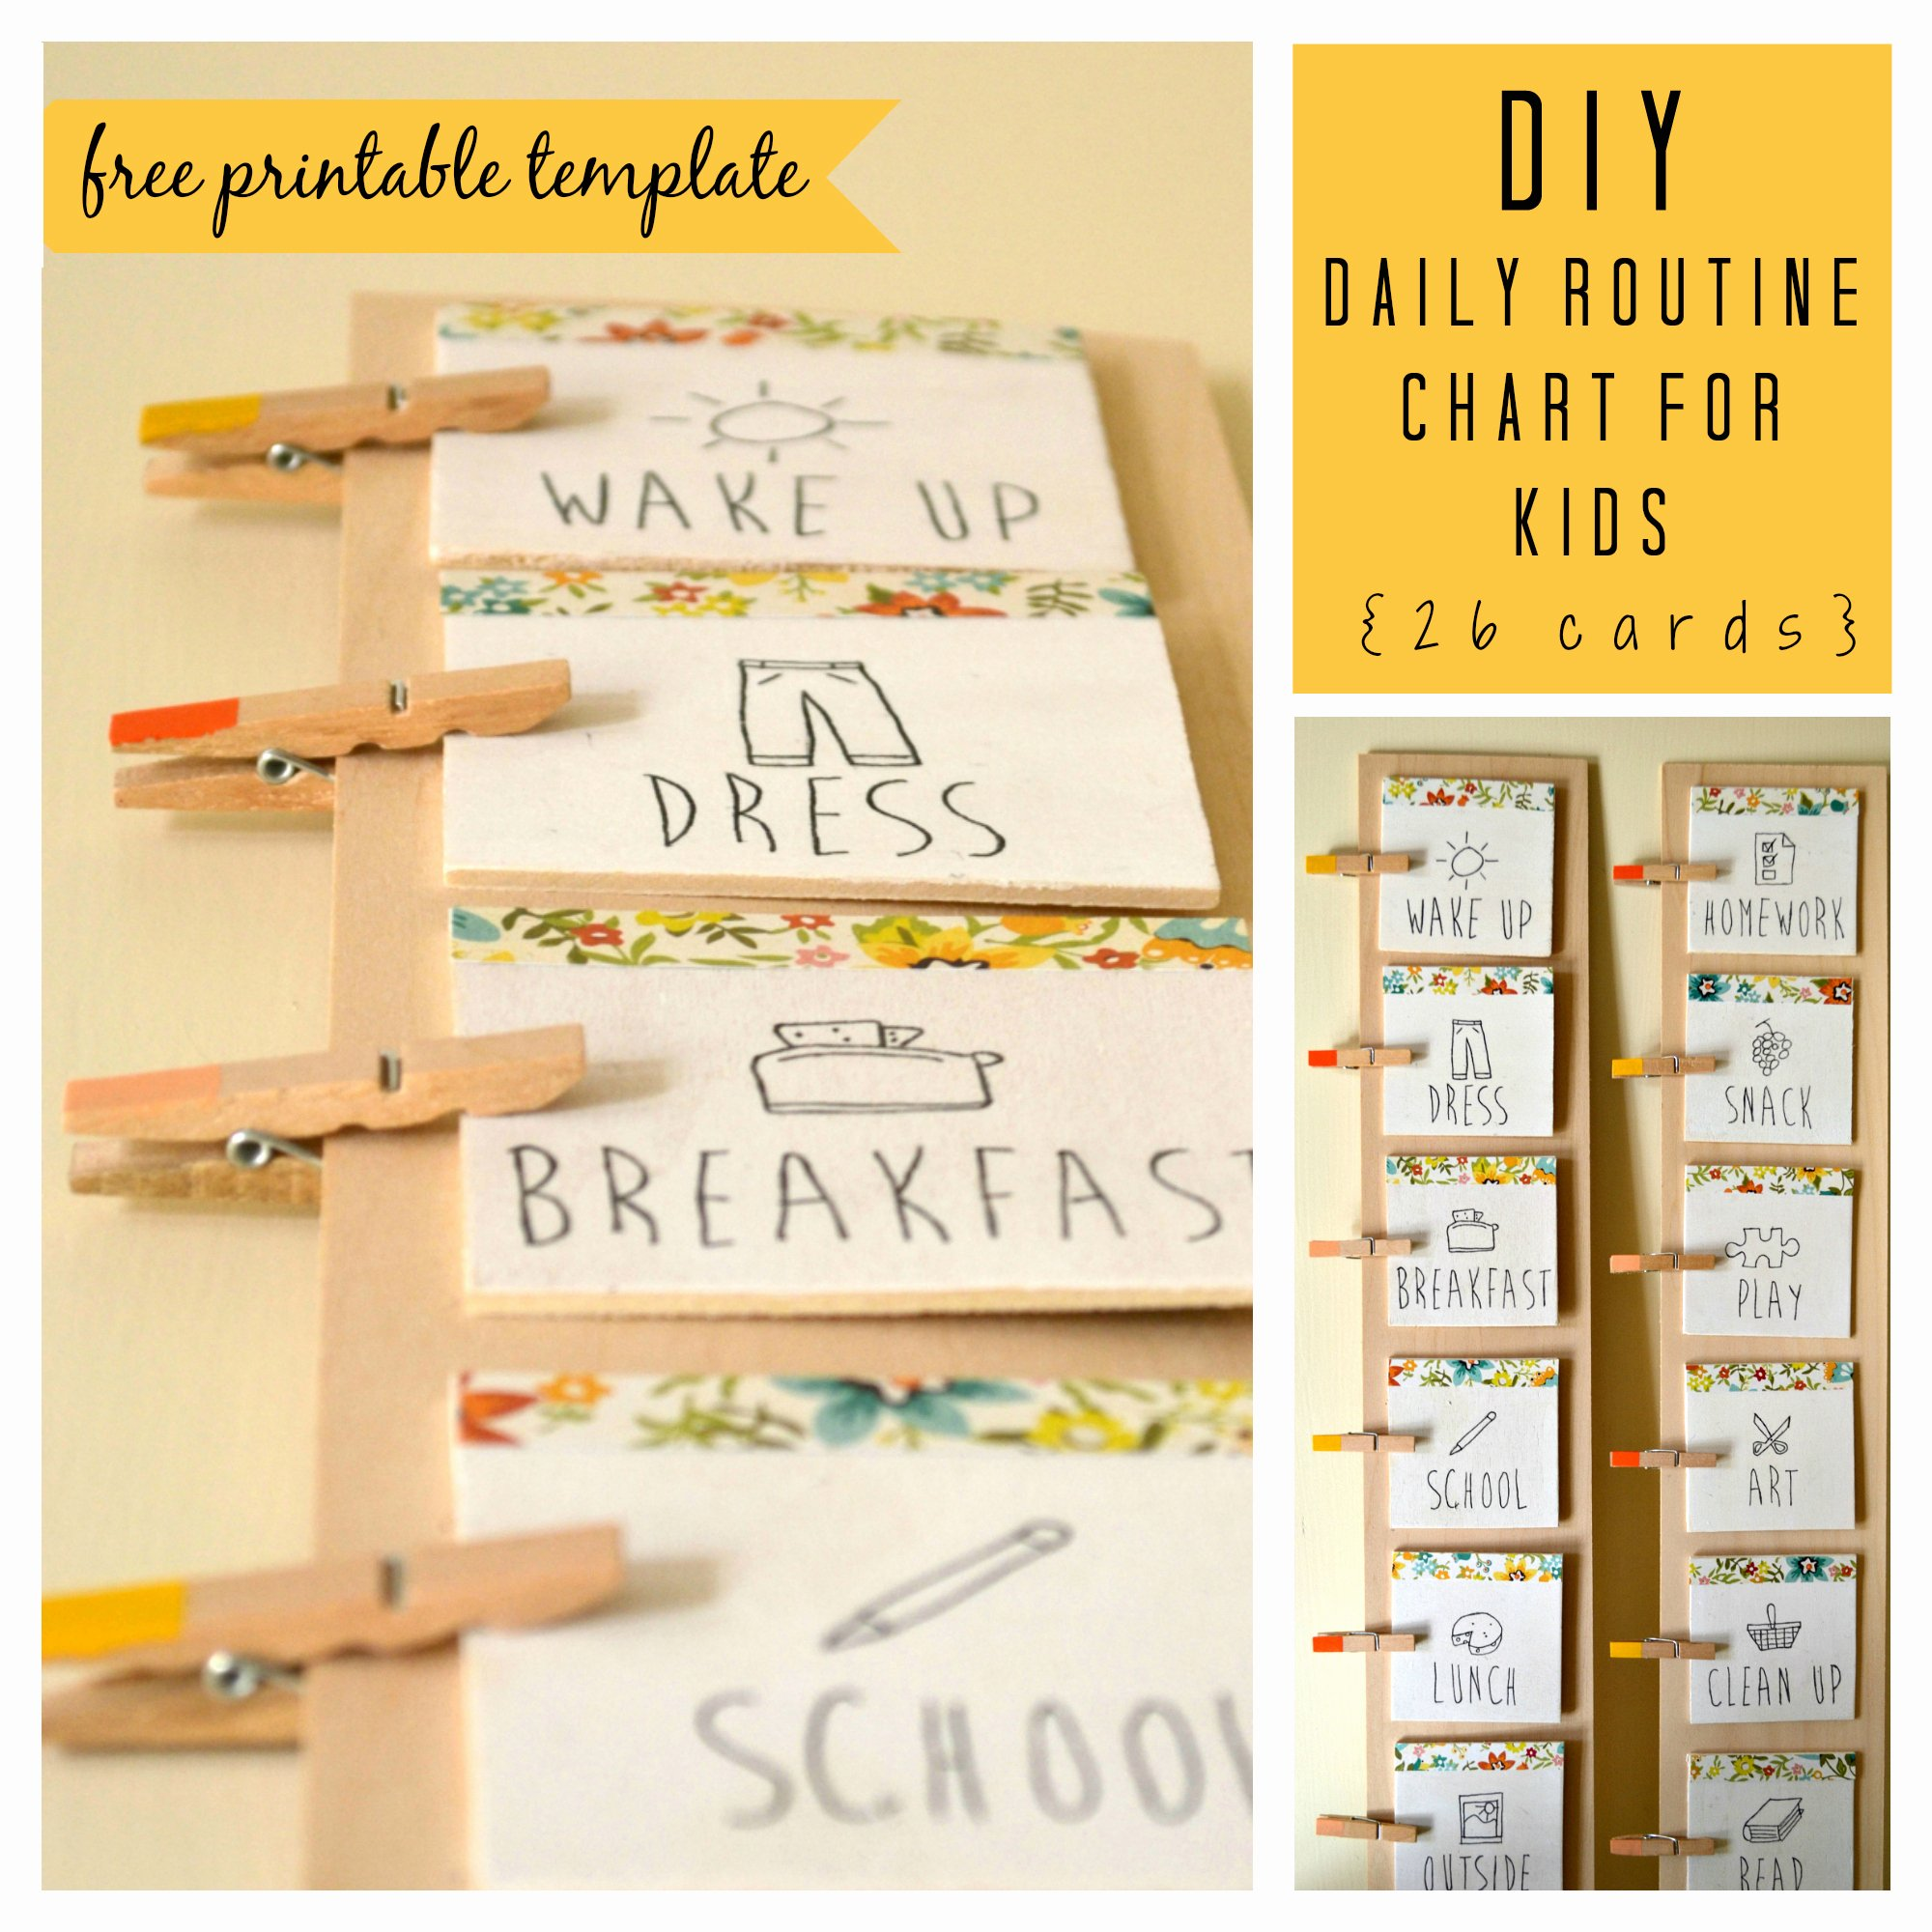 Daily Schedule Template for Kids Lovely Diy Daily Routine Chart for Kids